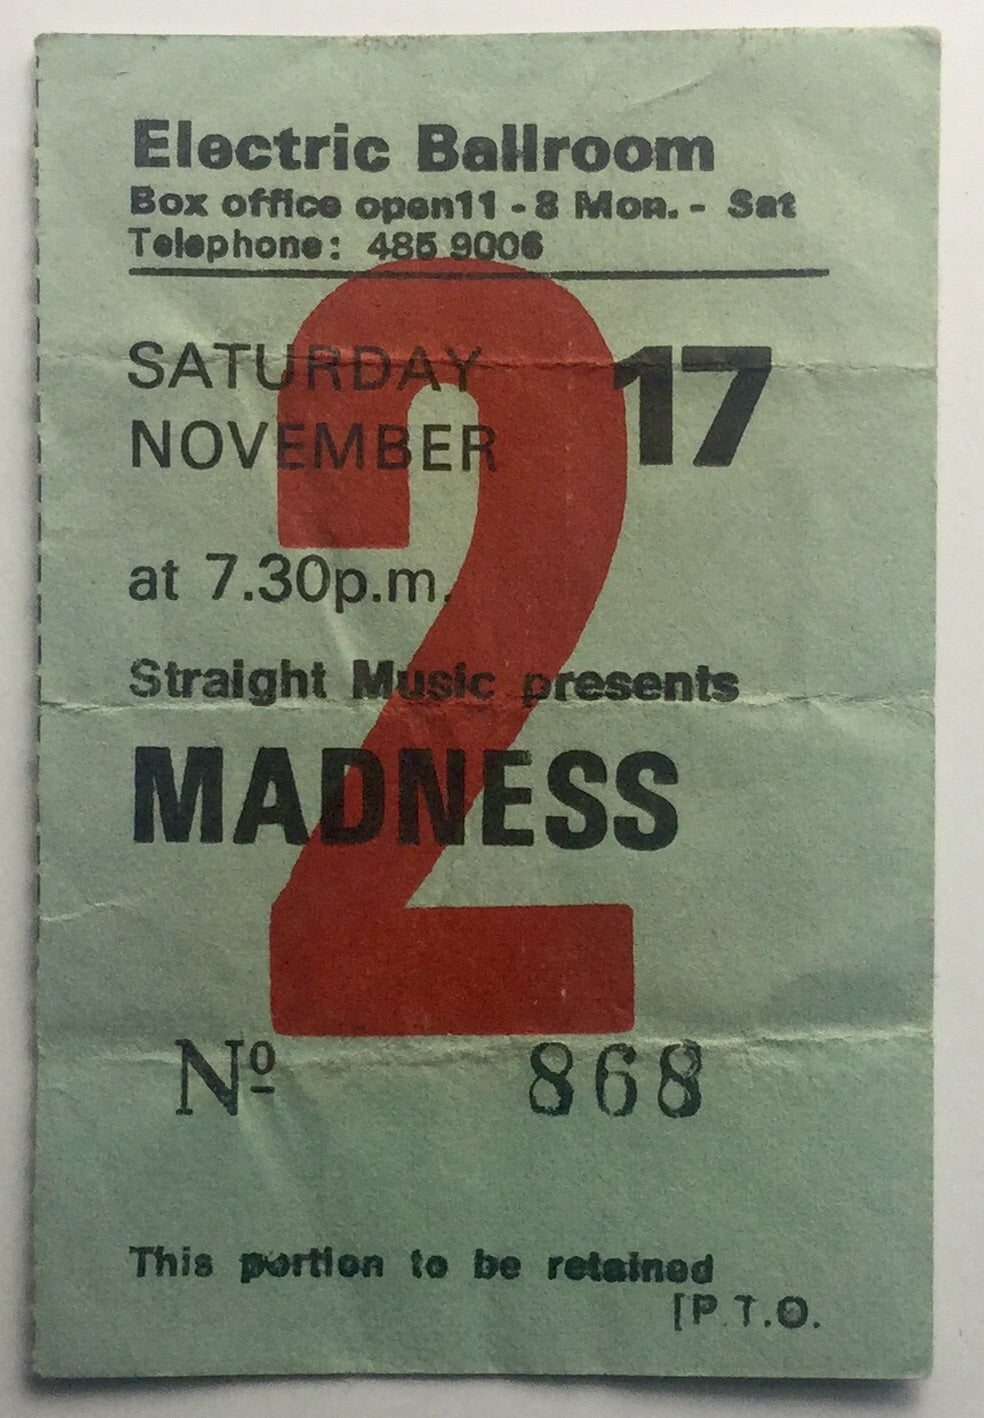 Madness Original Used Concert Ticket Electric Ballroom London 17th Nov 1979